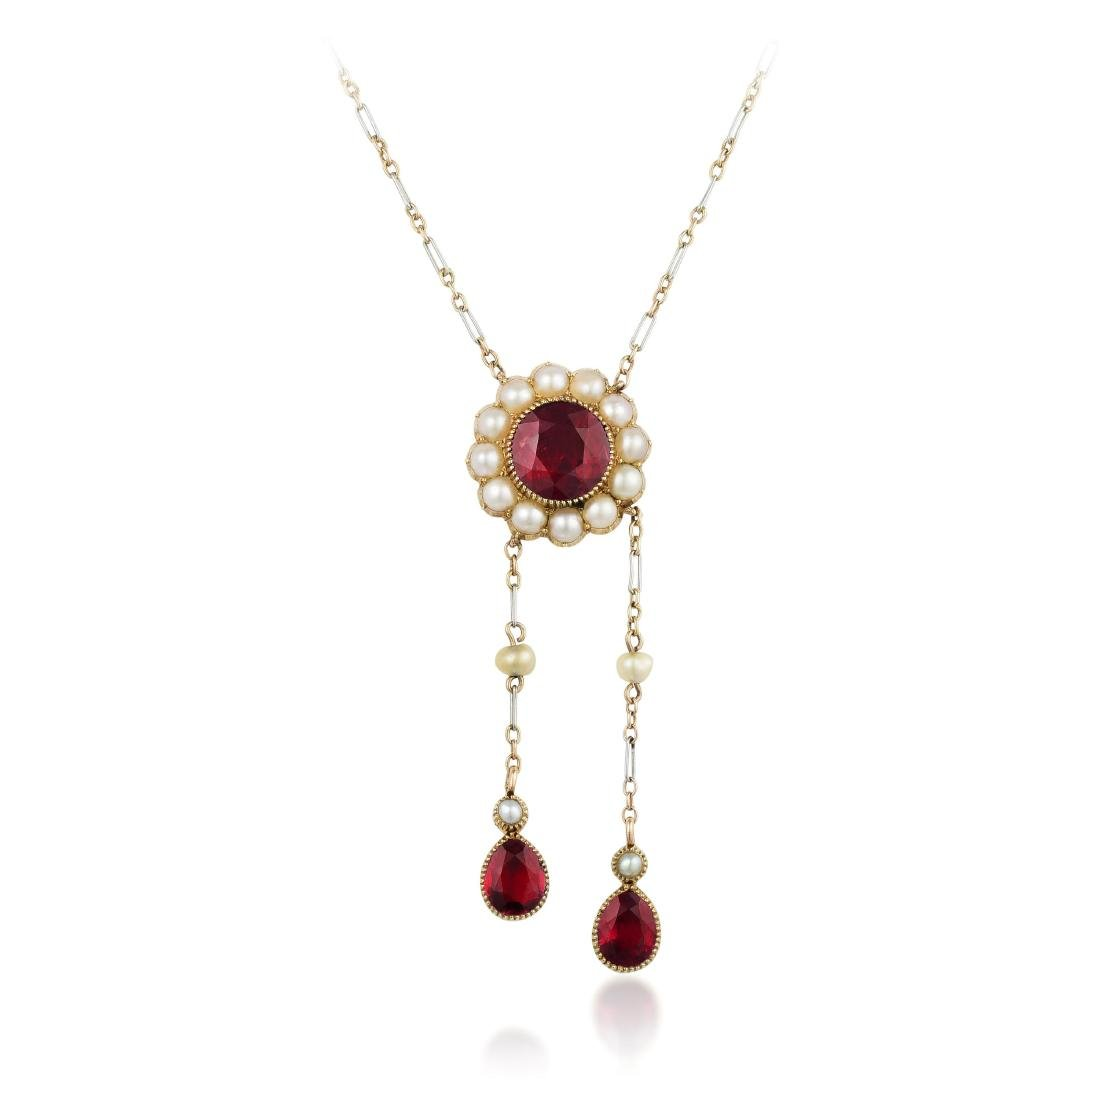 Antique Ruby and Pearl Necklace